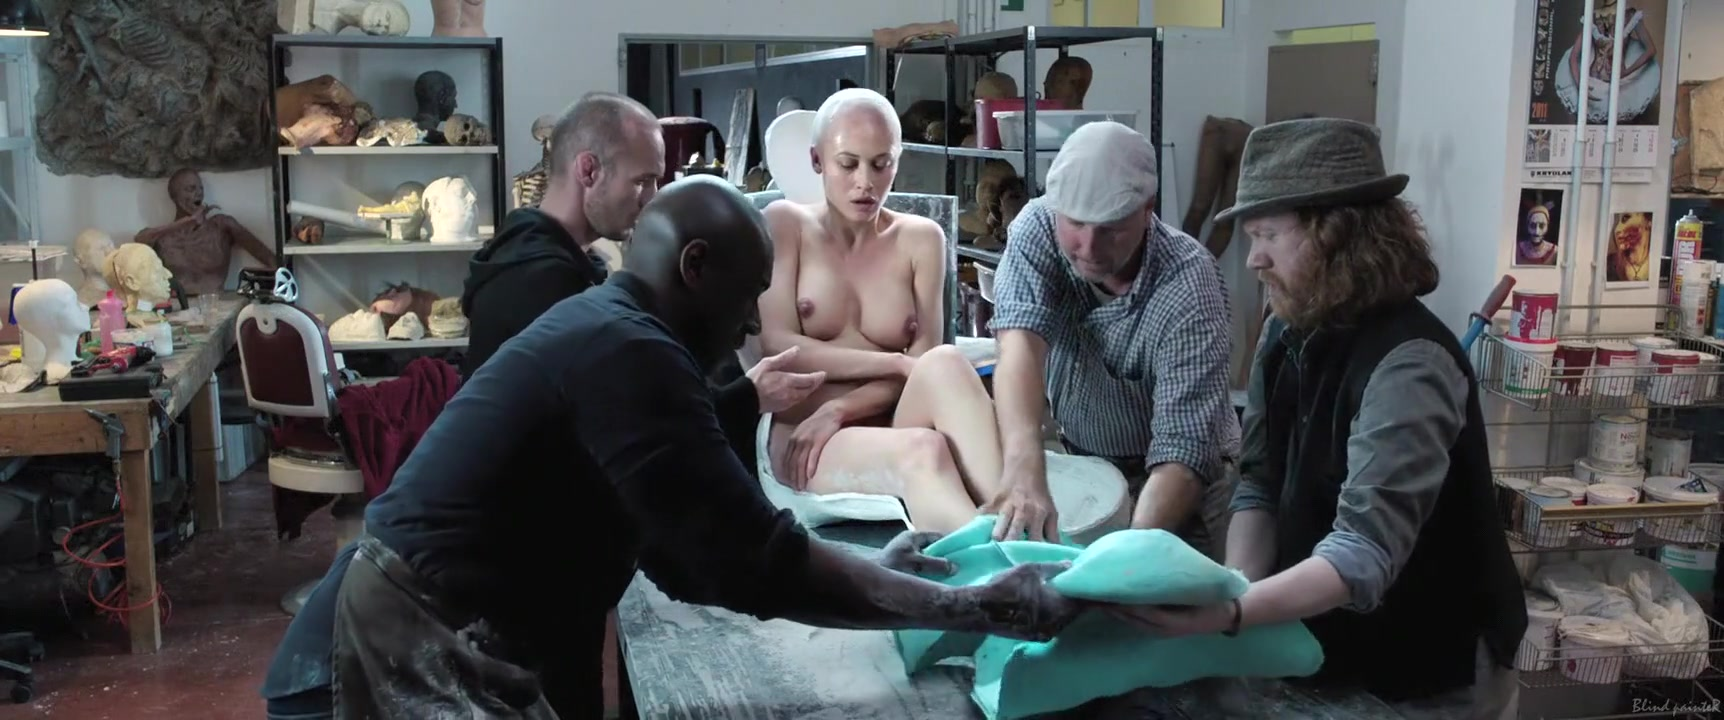 Nude gallery Big black dick in tiny white pussy